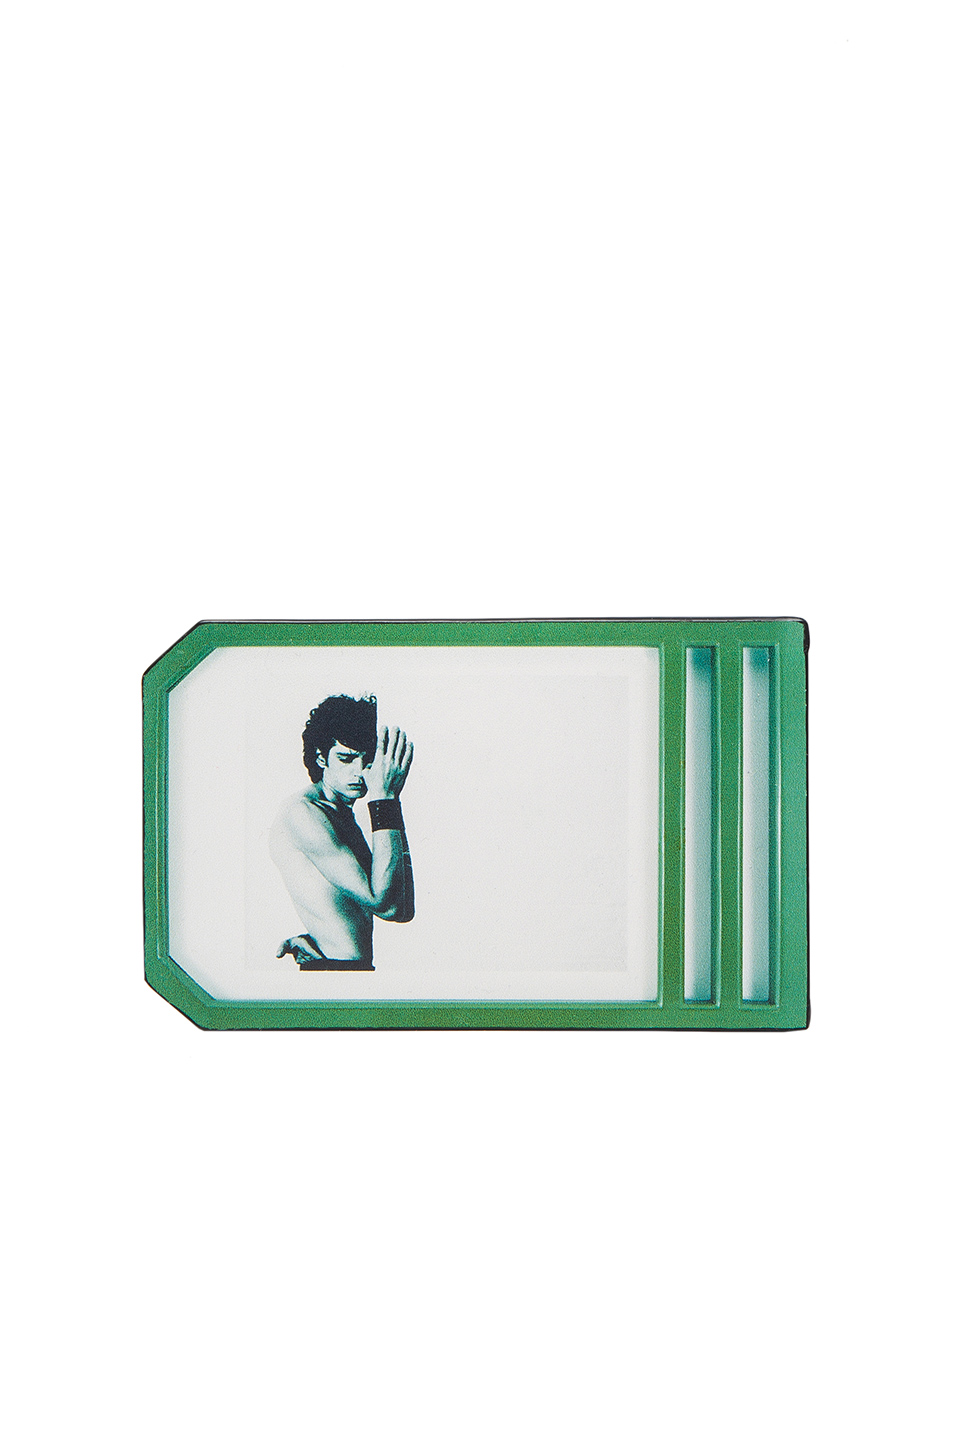 Raf Simons Self Portrait Cardholder in Green